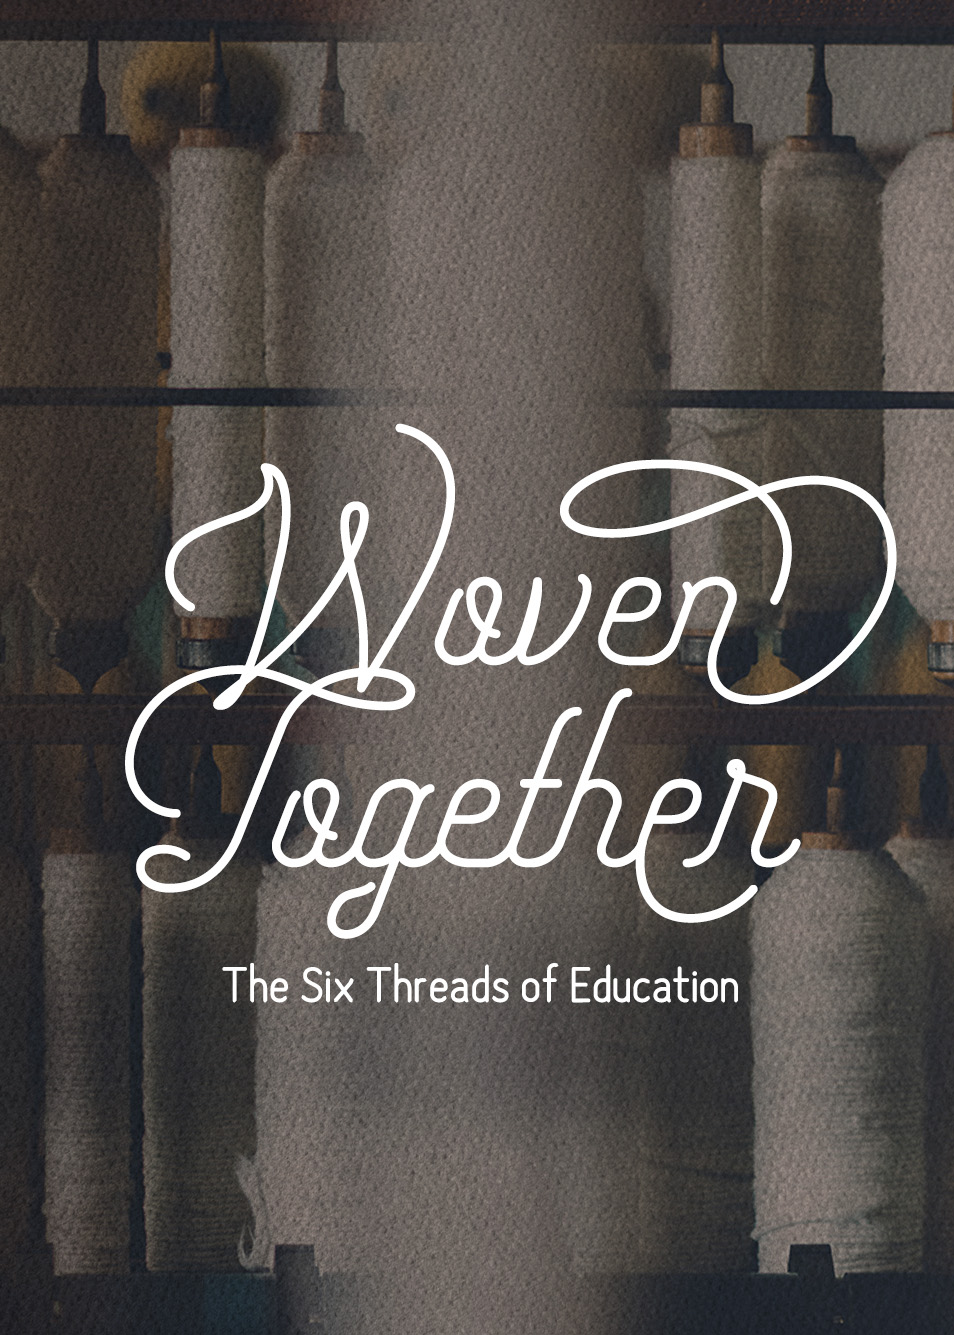 Woven Together - Webinar Recording